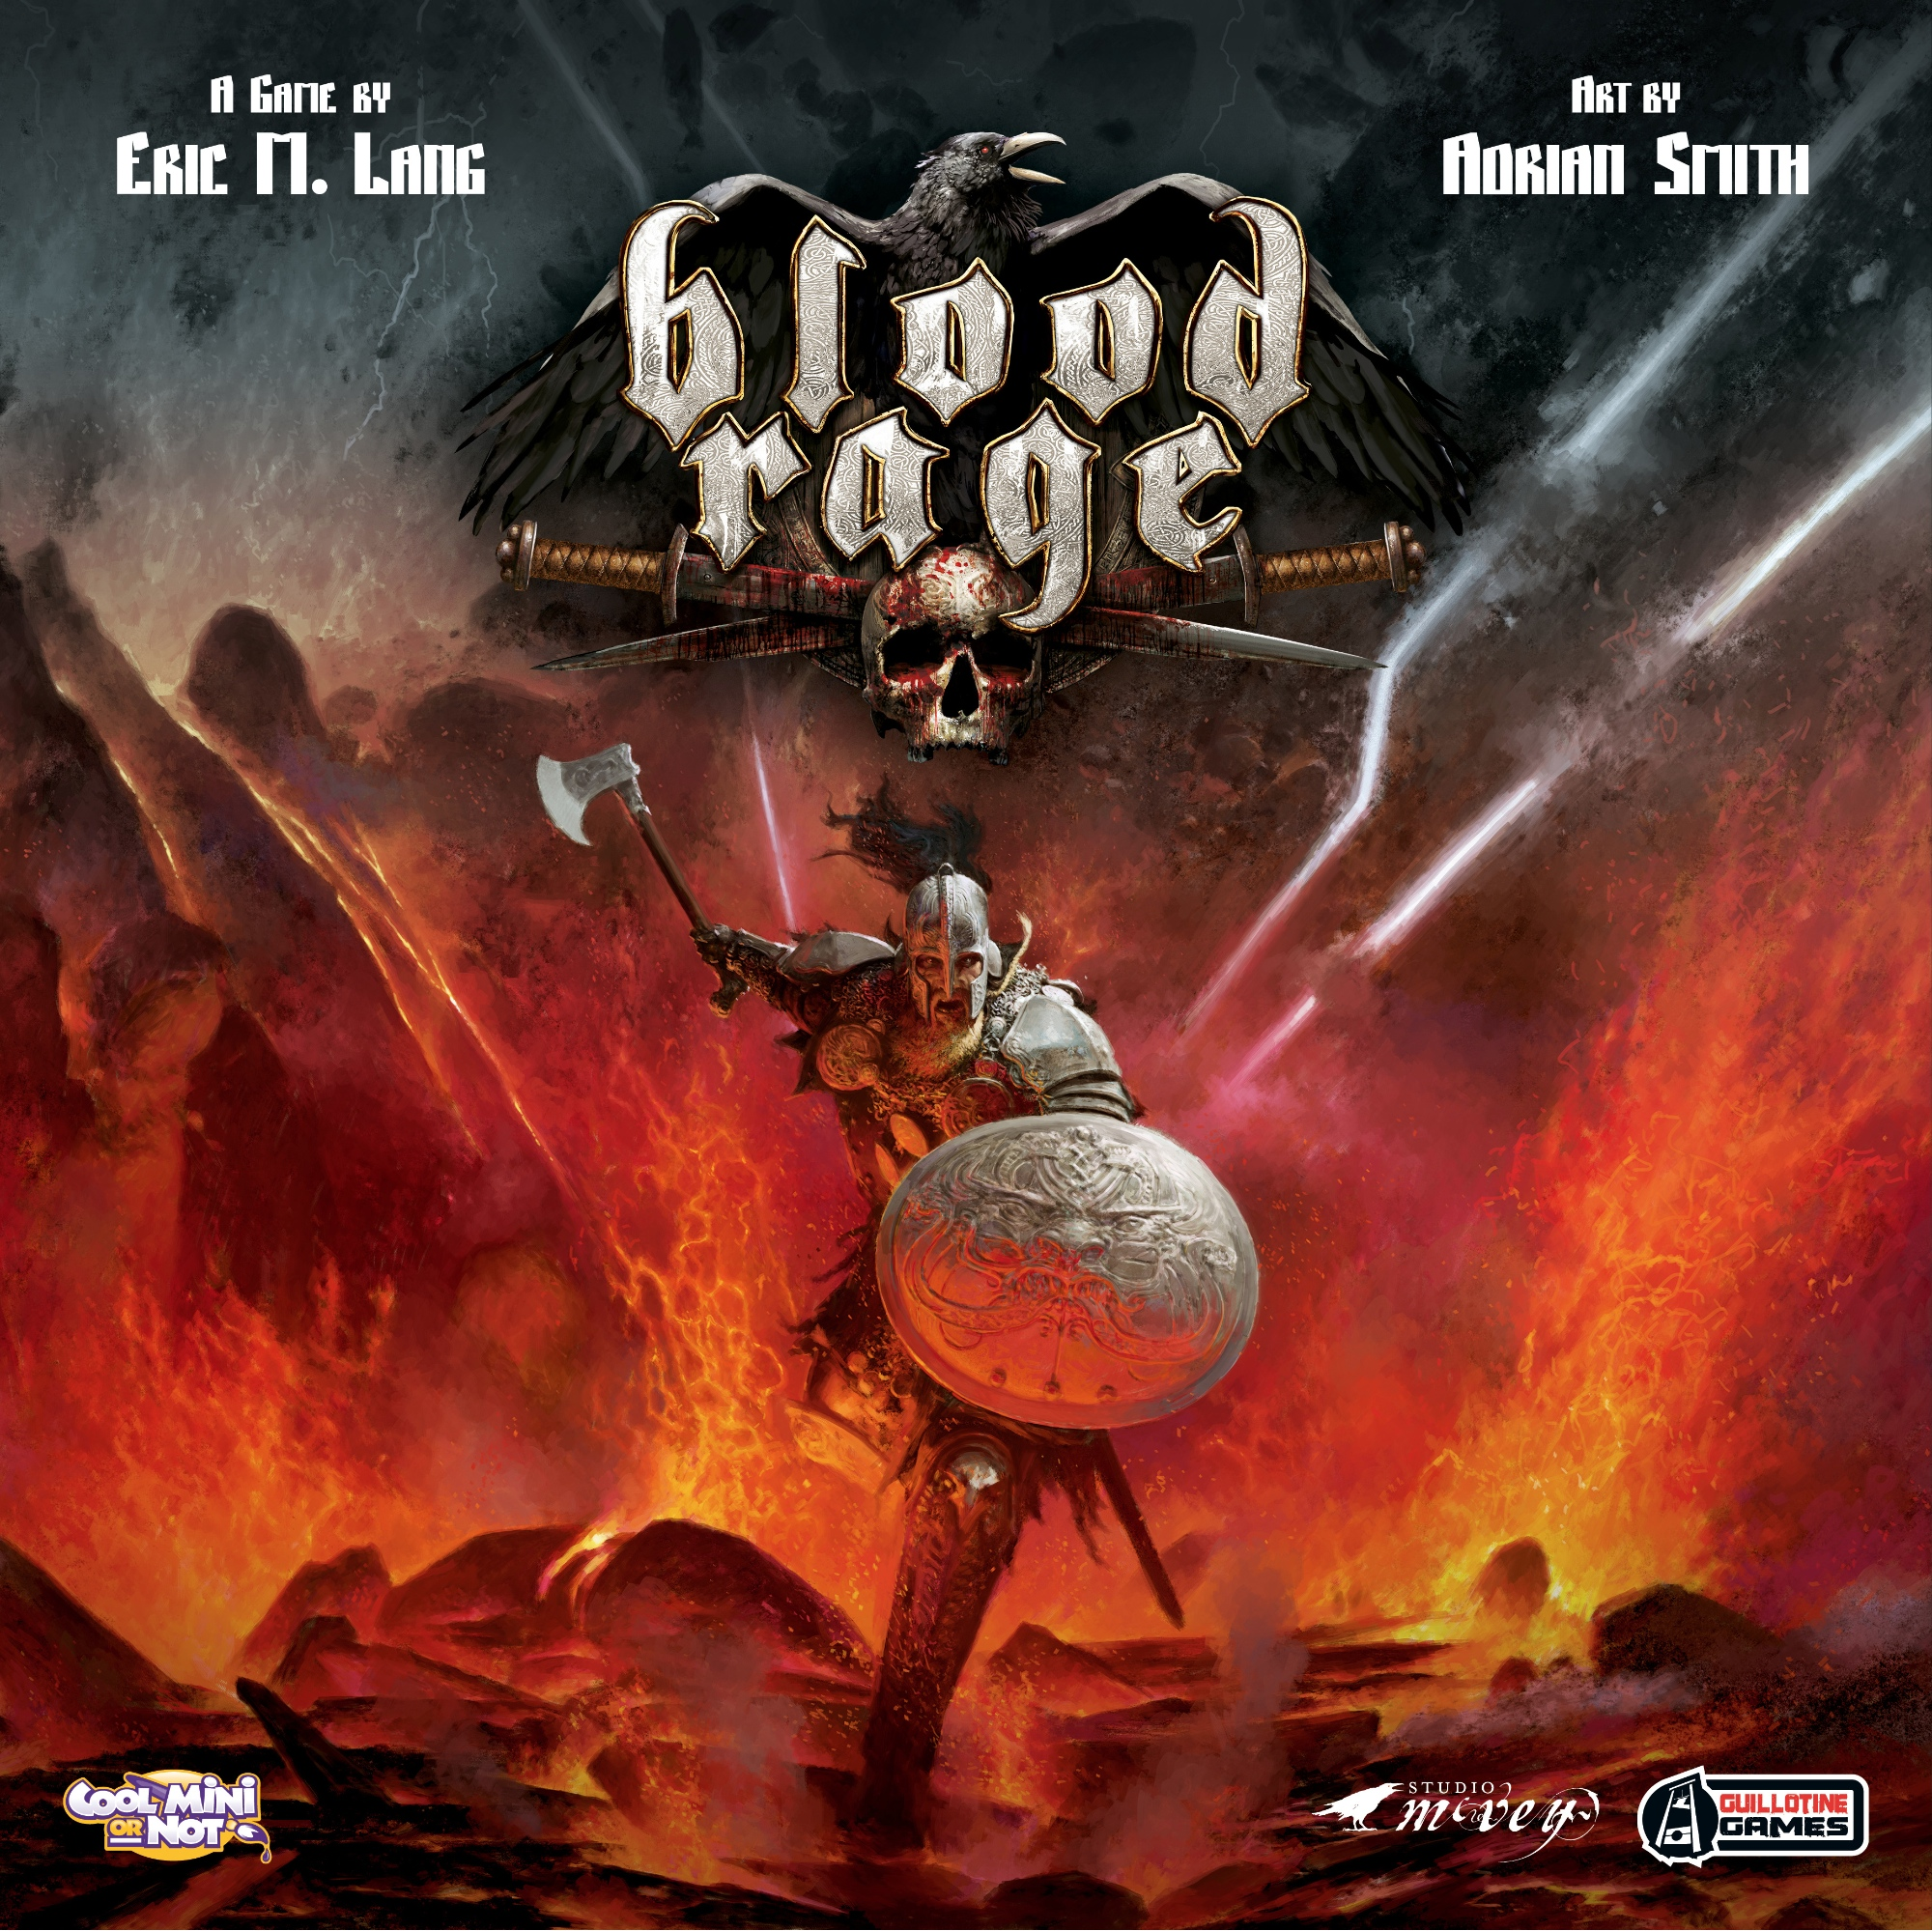 Blood Rage - Written ReviewVideo - Rook & Record - Blood RagePodcast - Review & Behind the Scenes - Blood Rage